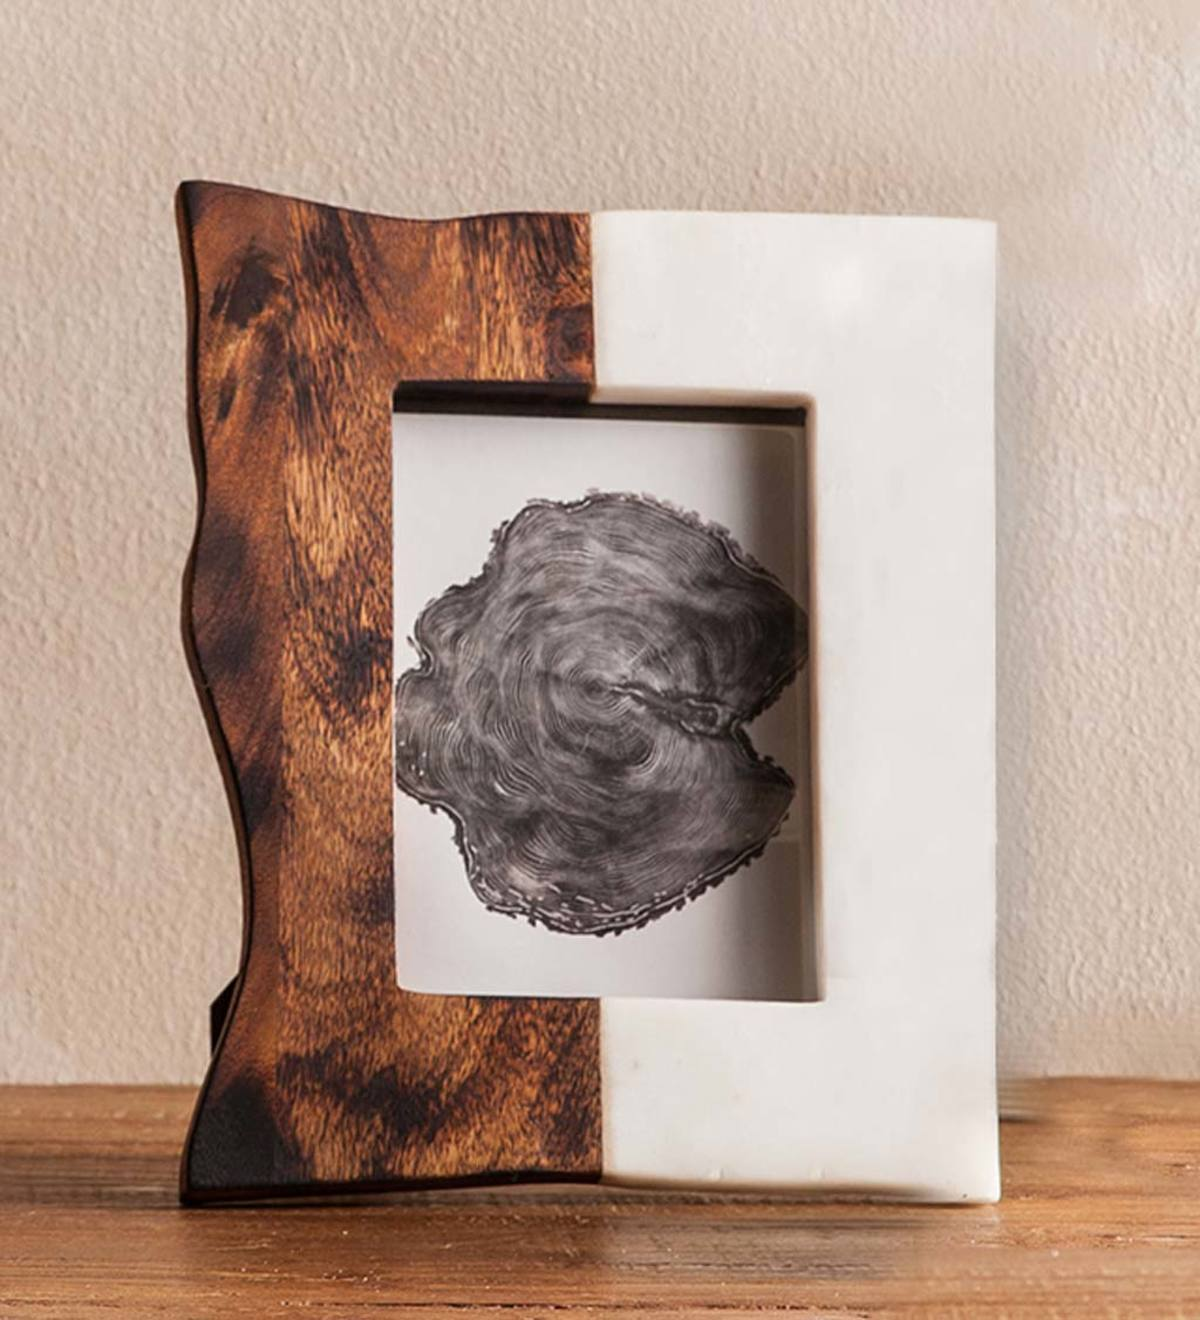 4x6 Wood And Marble Photo Frame - Dark wood Horizontal Split - VER